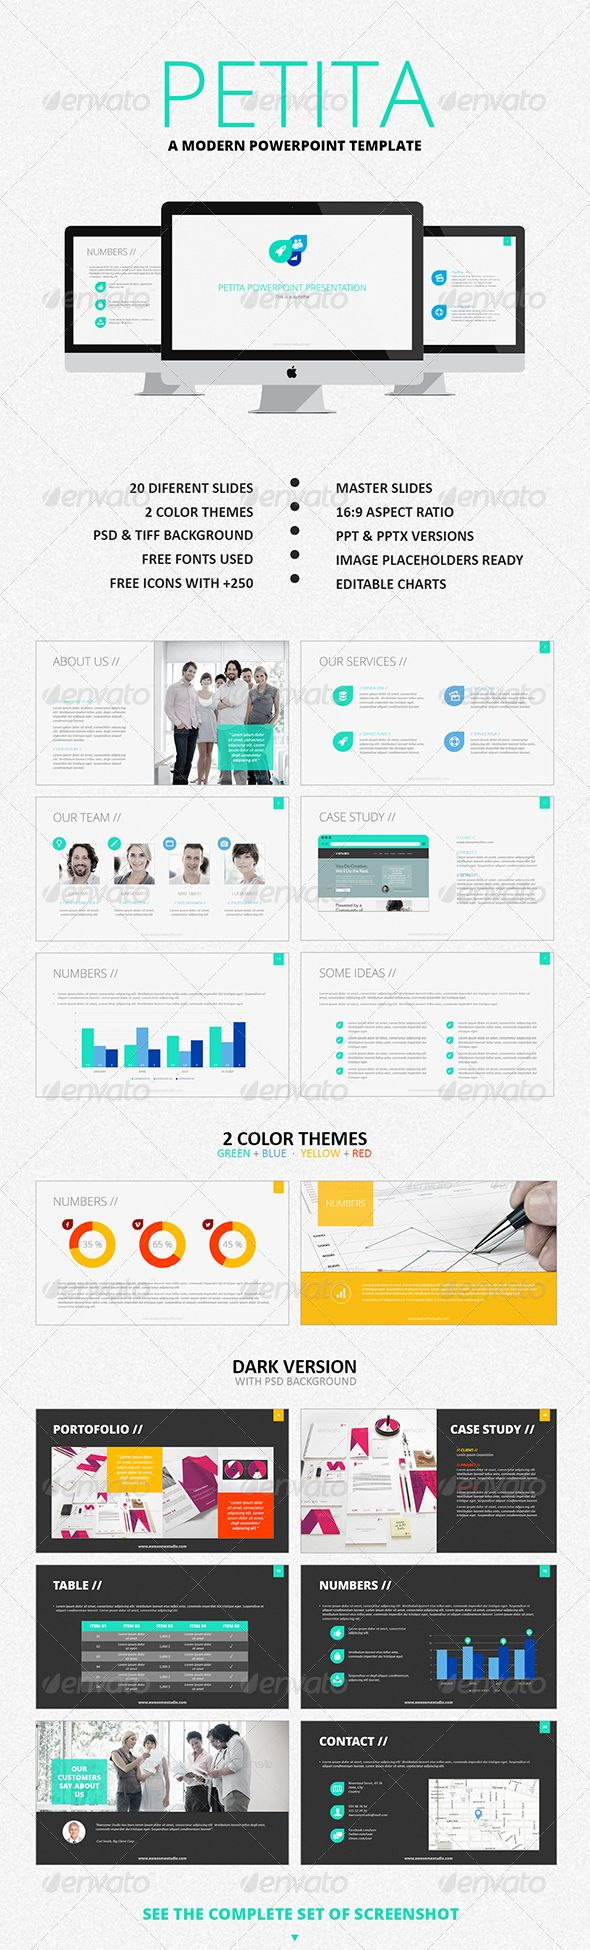 60 best powerpoint images on pinterest ppt design presentation petita powerpoint template toneelgroepblik Choice Image